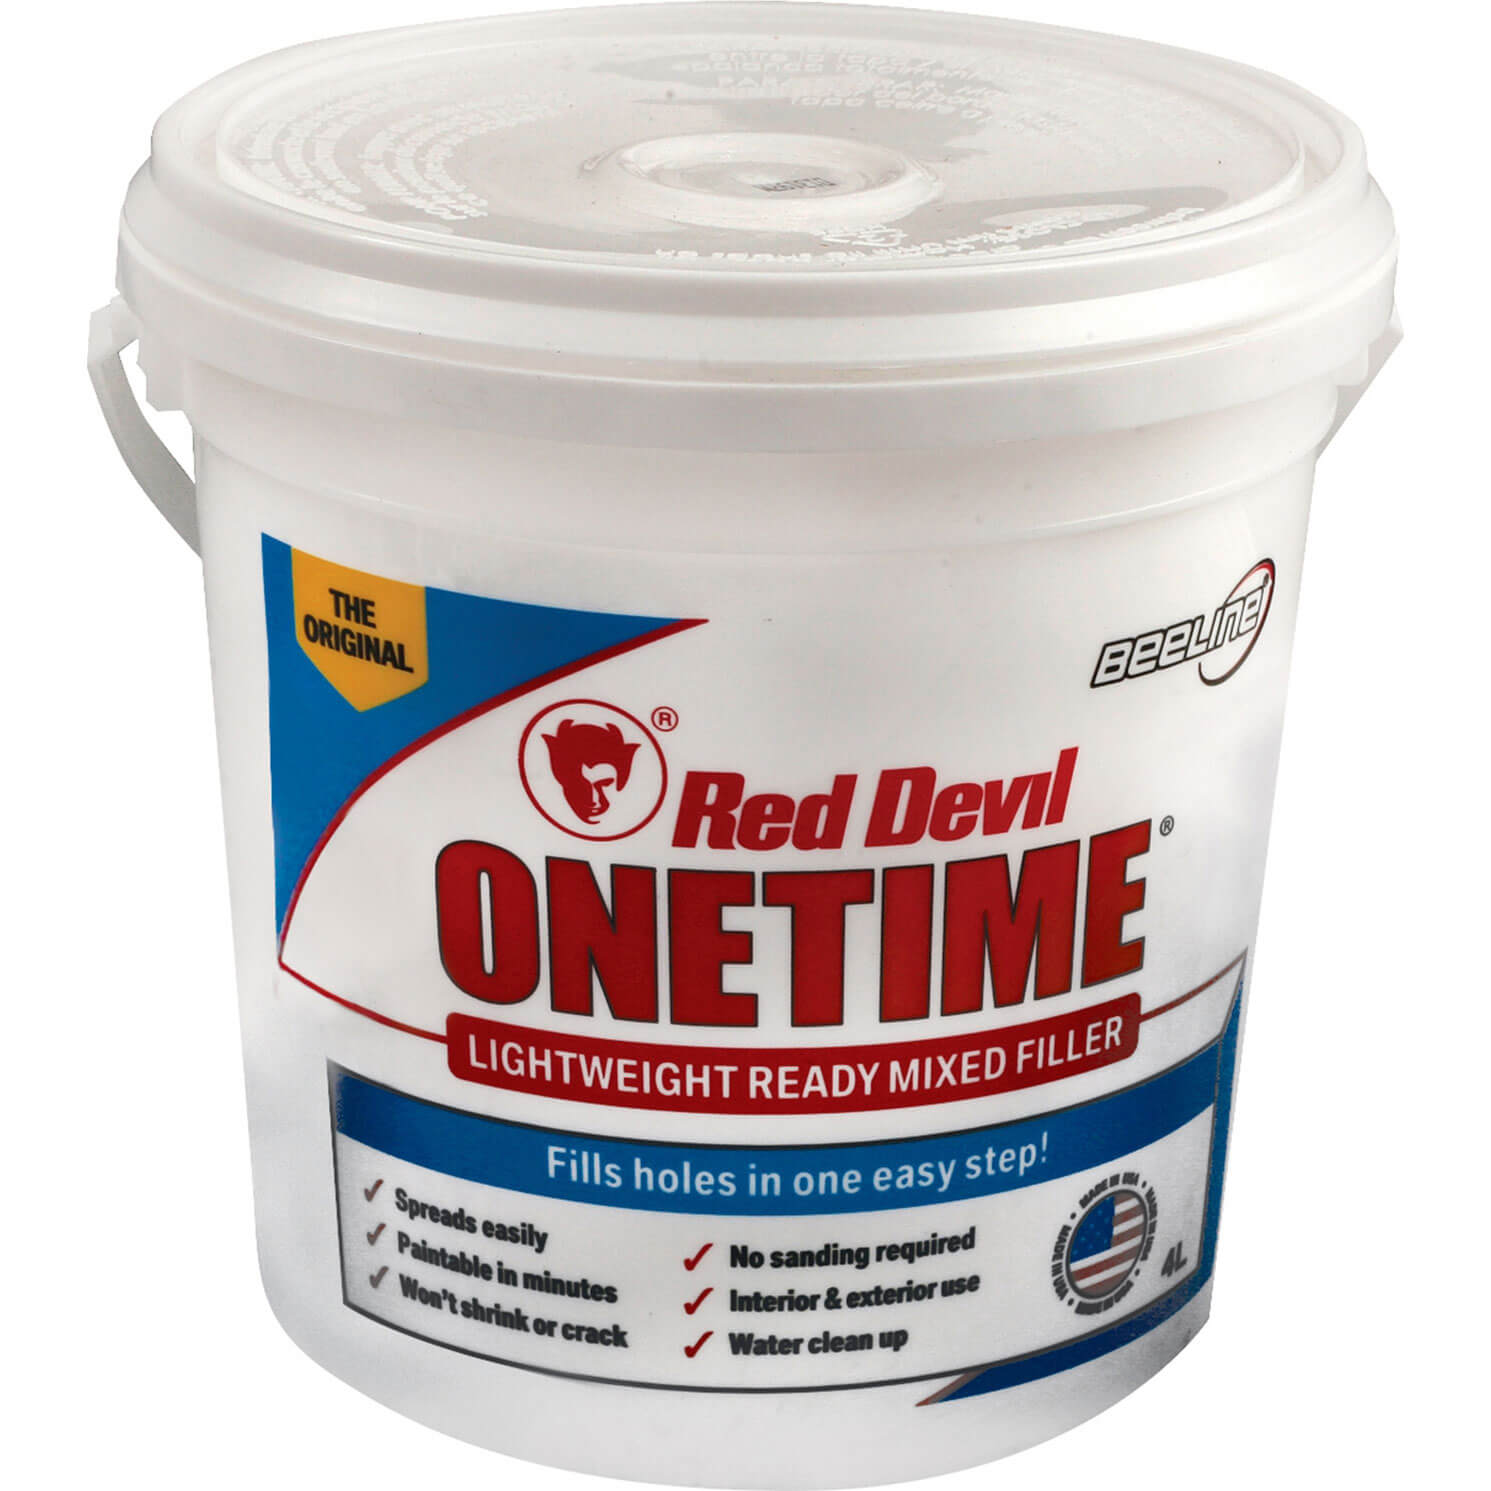 Image of Red Devil Onetime Ready Mixed Filler 4l